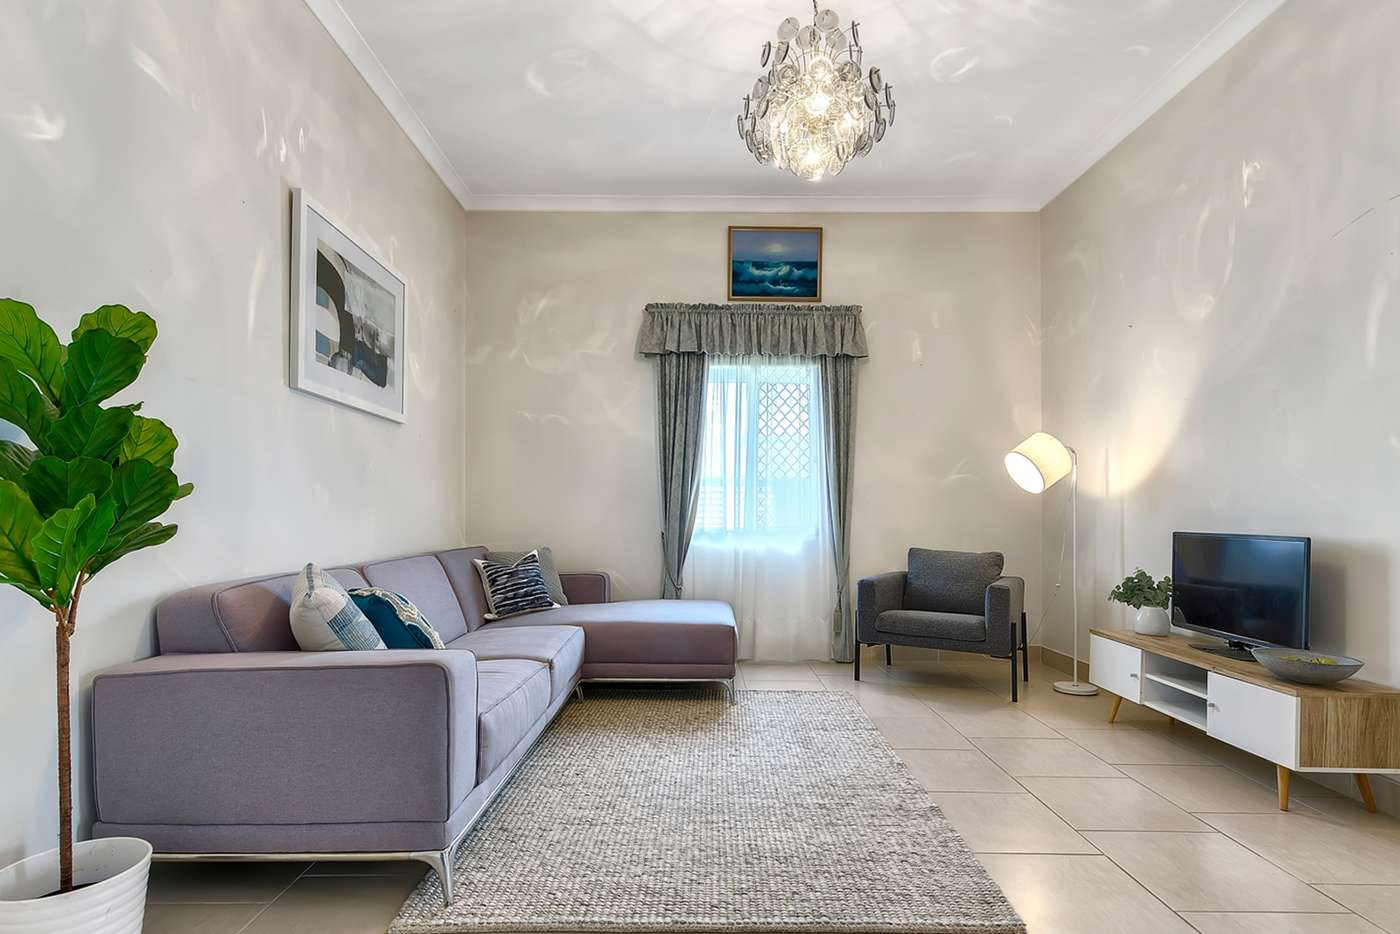 Fifth view of Homely house listing, 122 Lloyd Street, Alderley QLD 4051